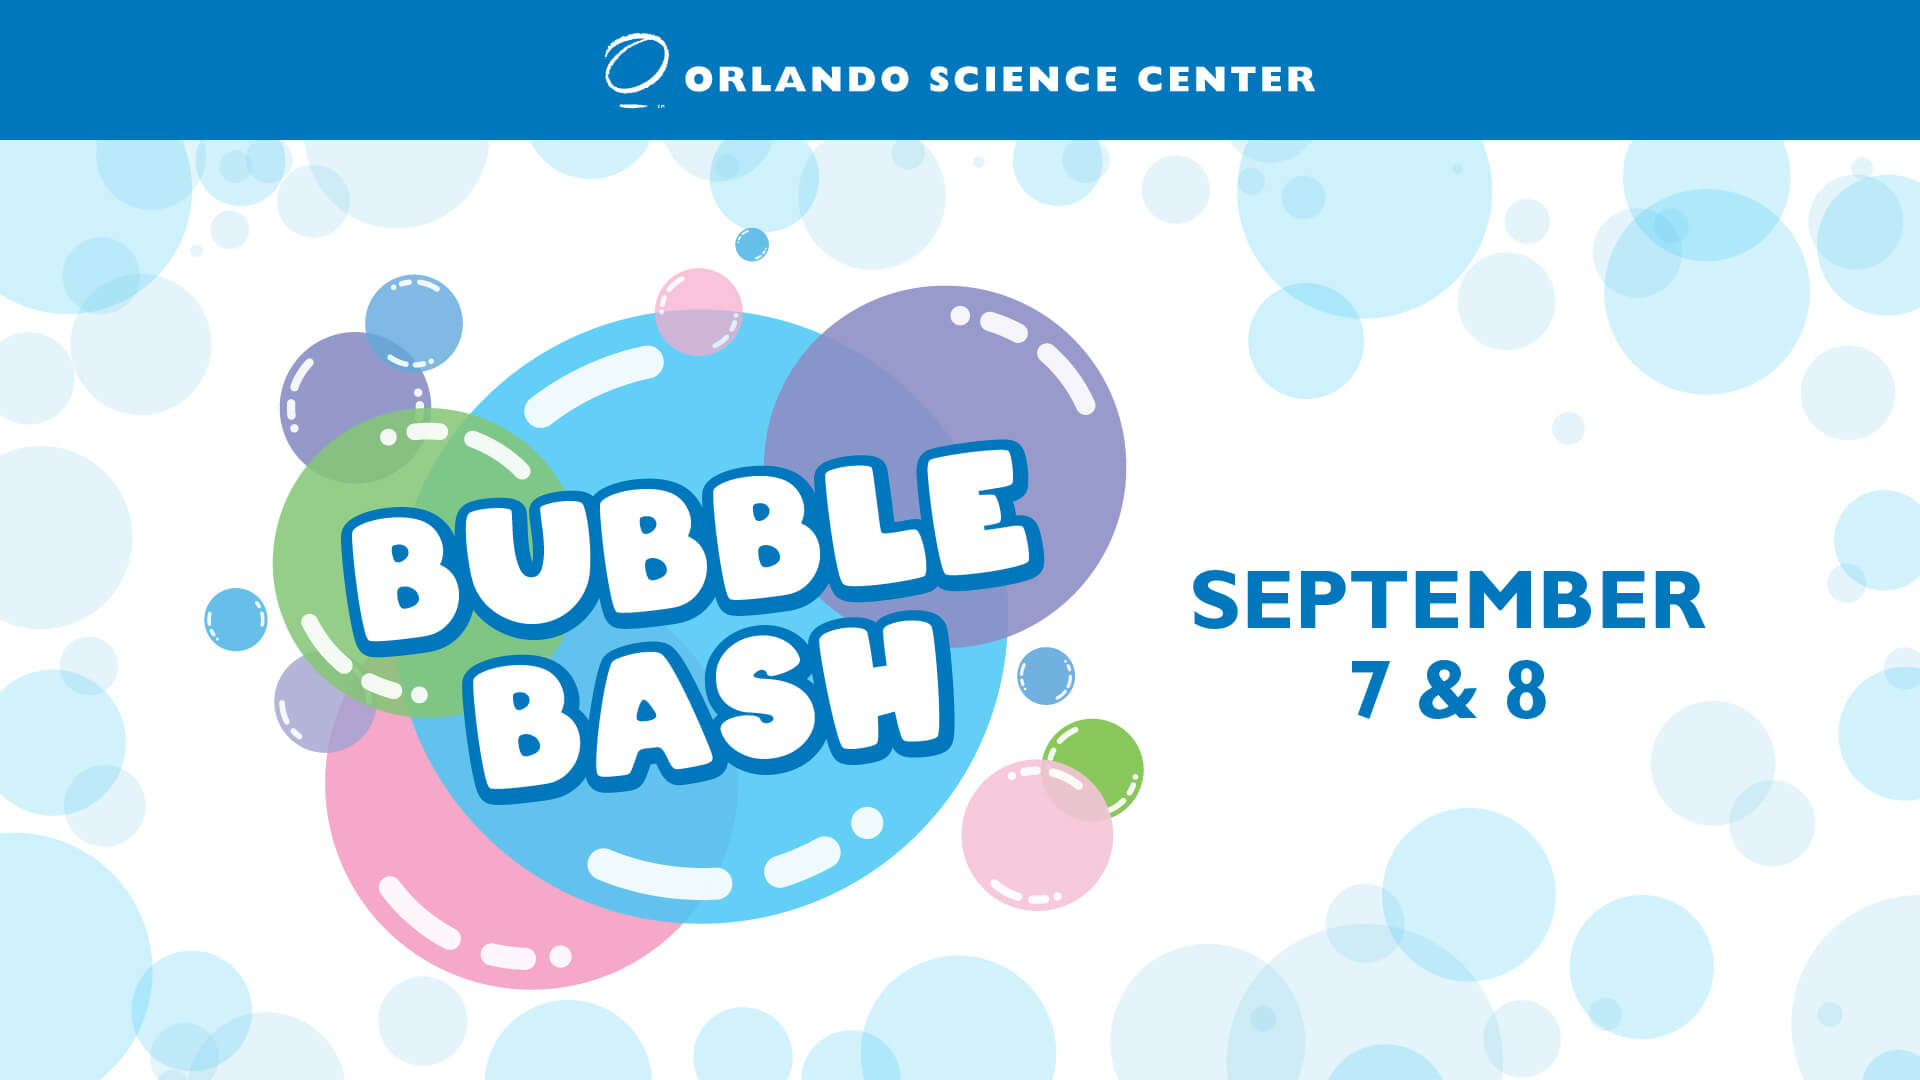 Bubble Bash September 7 and 8